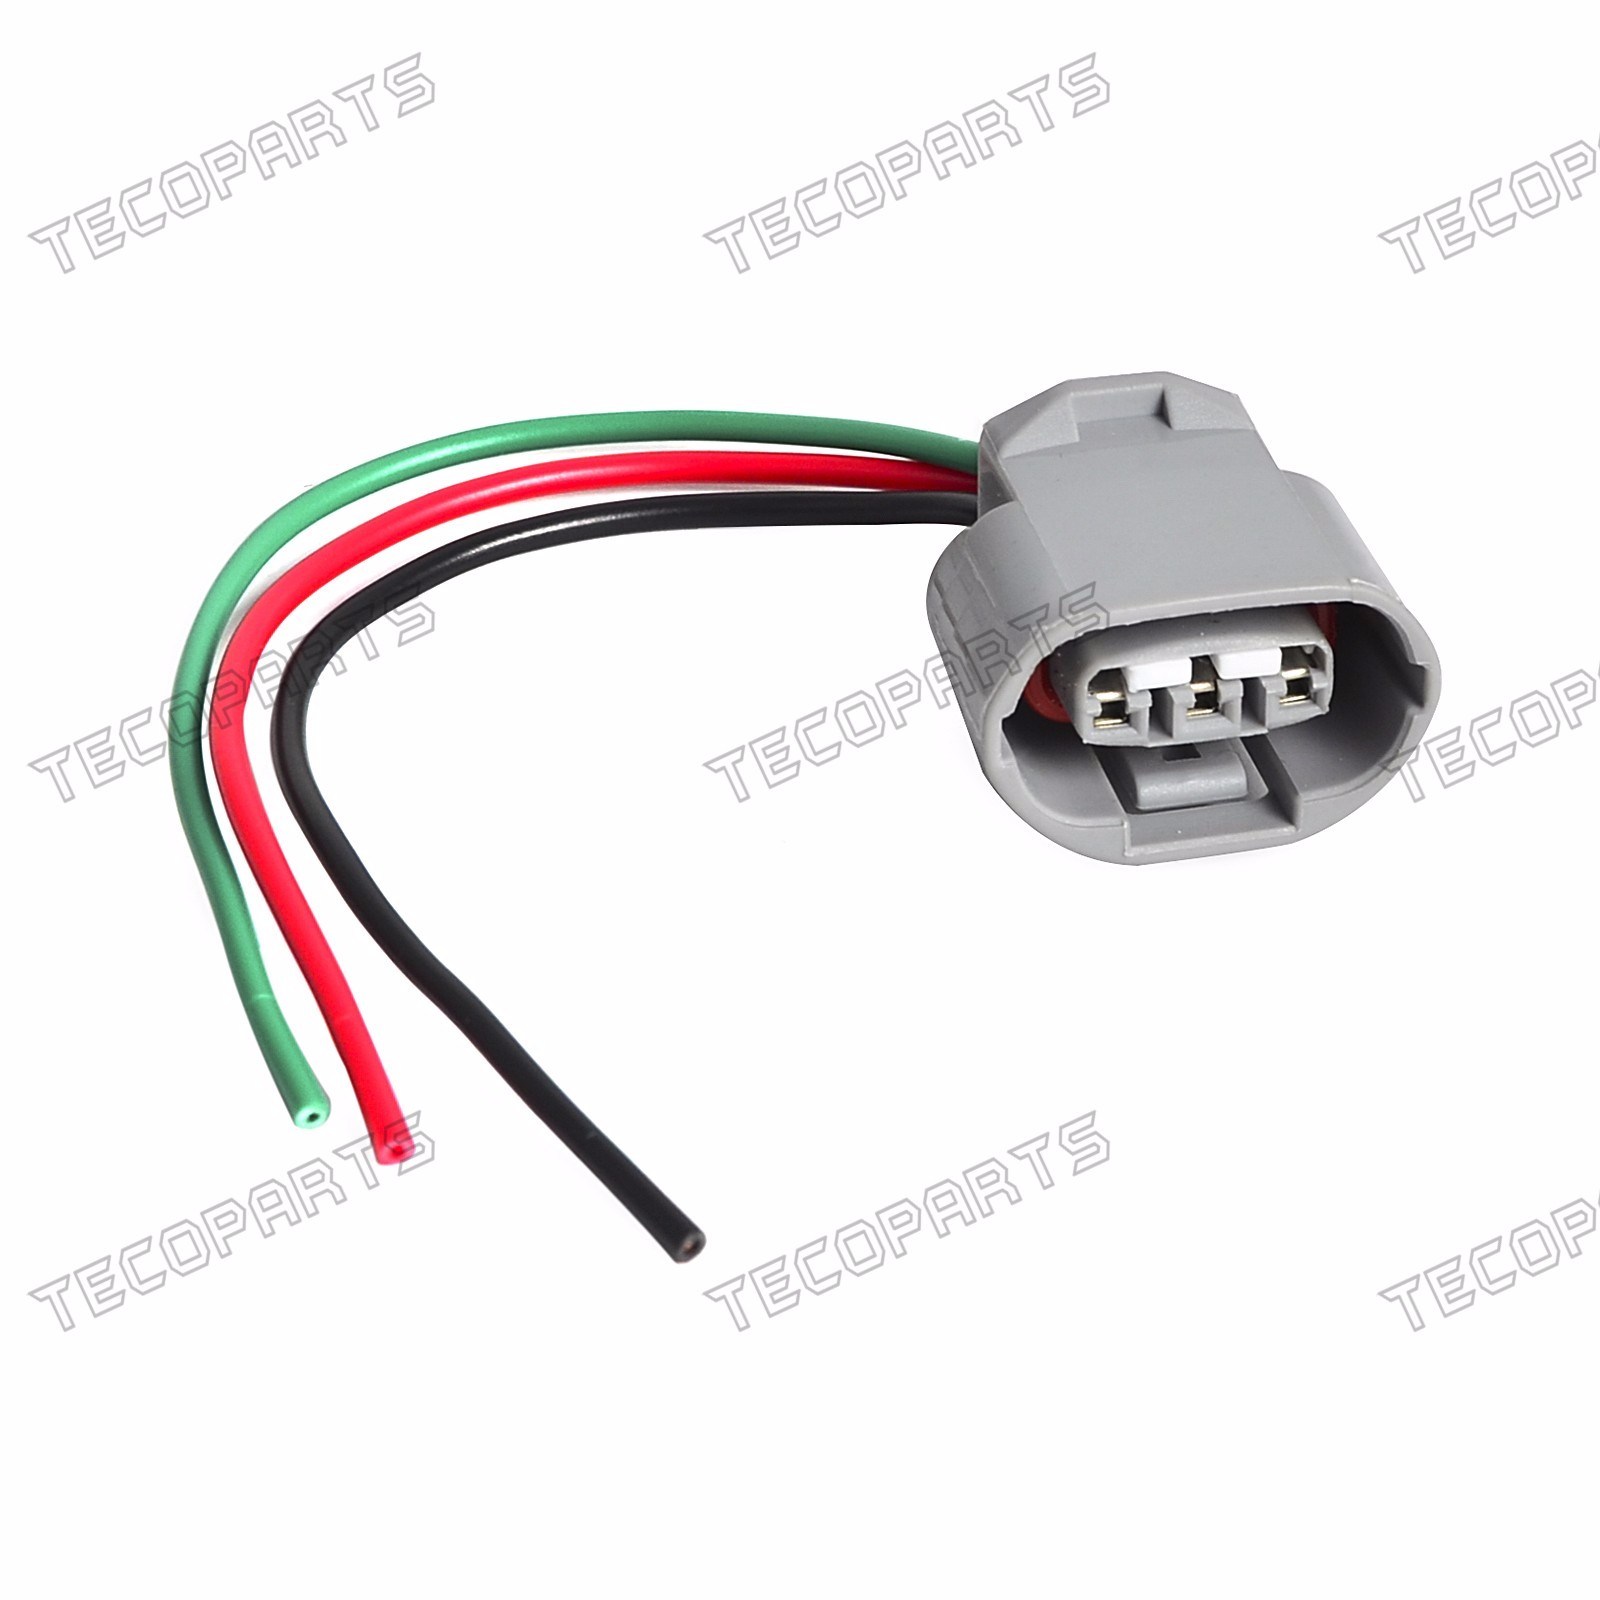 hight resolution of details about alternator repair plug harness 3 wire connector fit nissan altima 2 5l 07 08 09